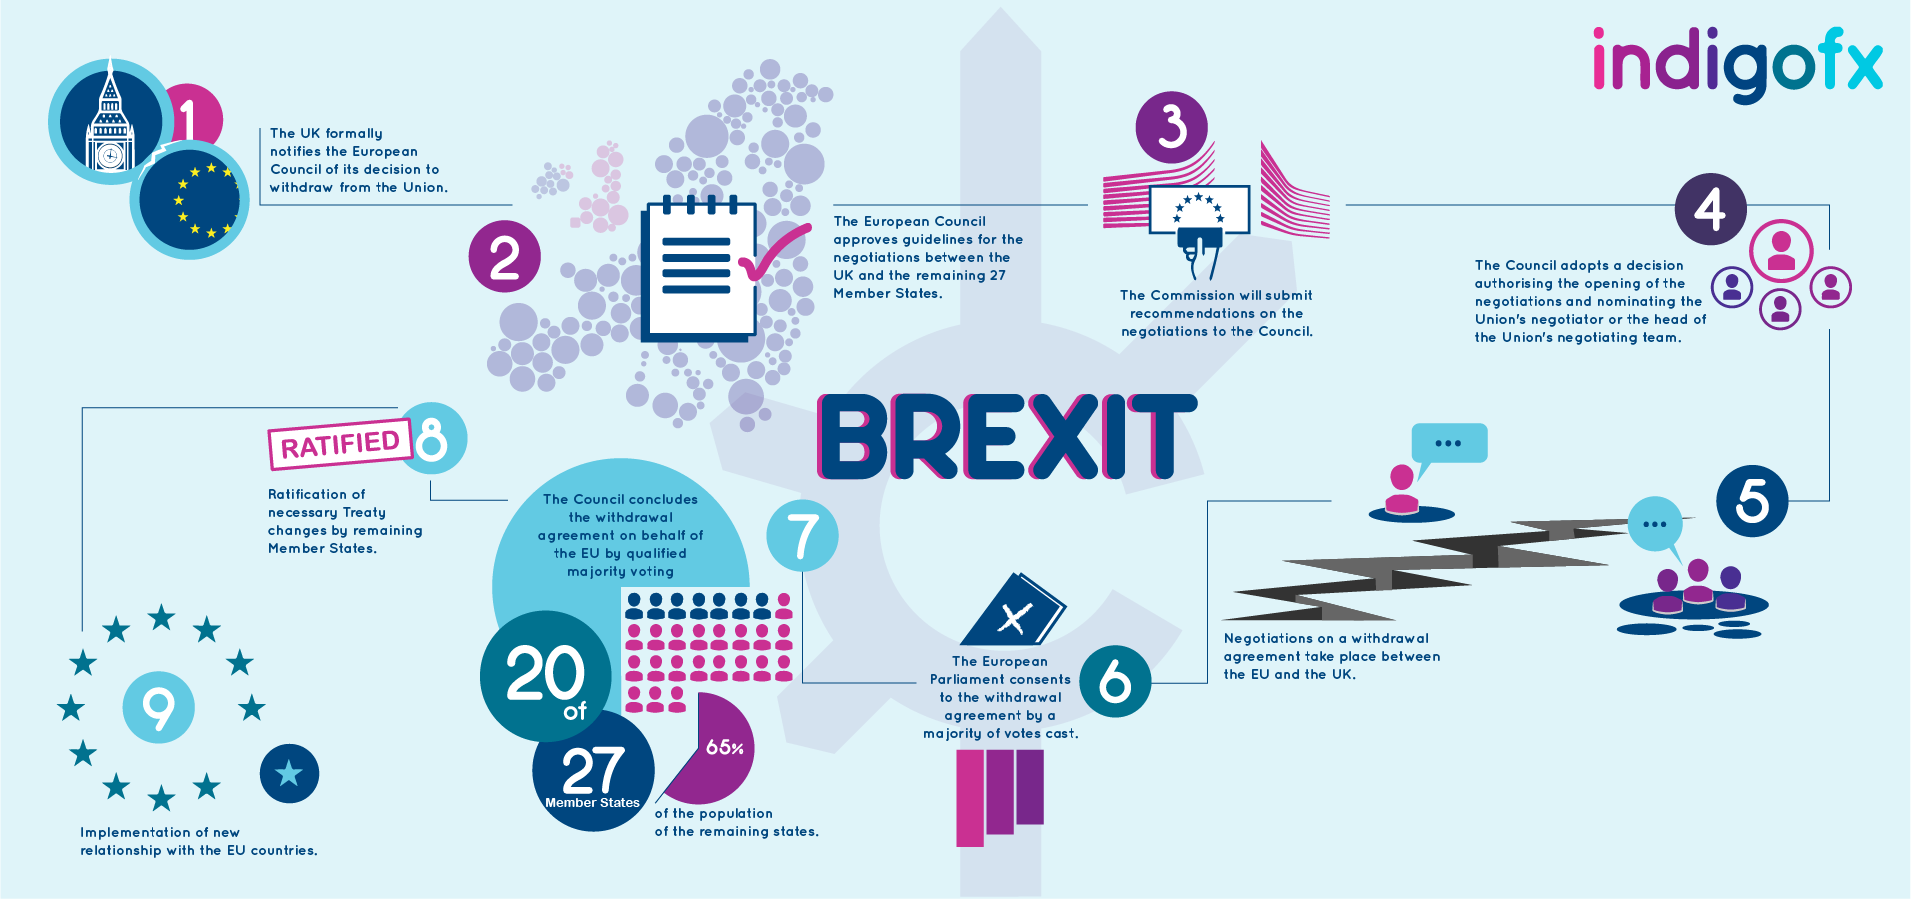 Brexit: Is Article 50 detrimental? We're about to find out!